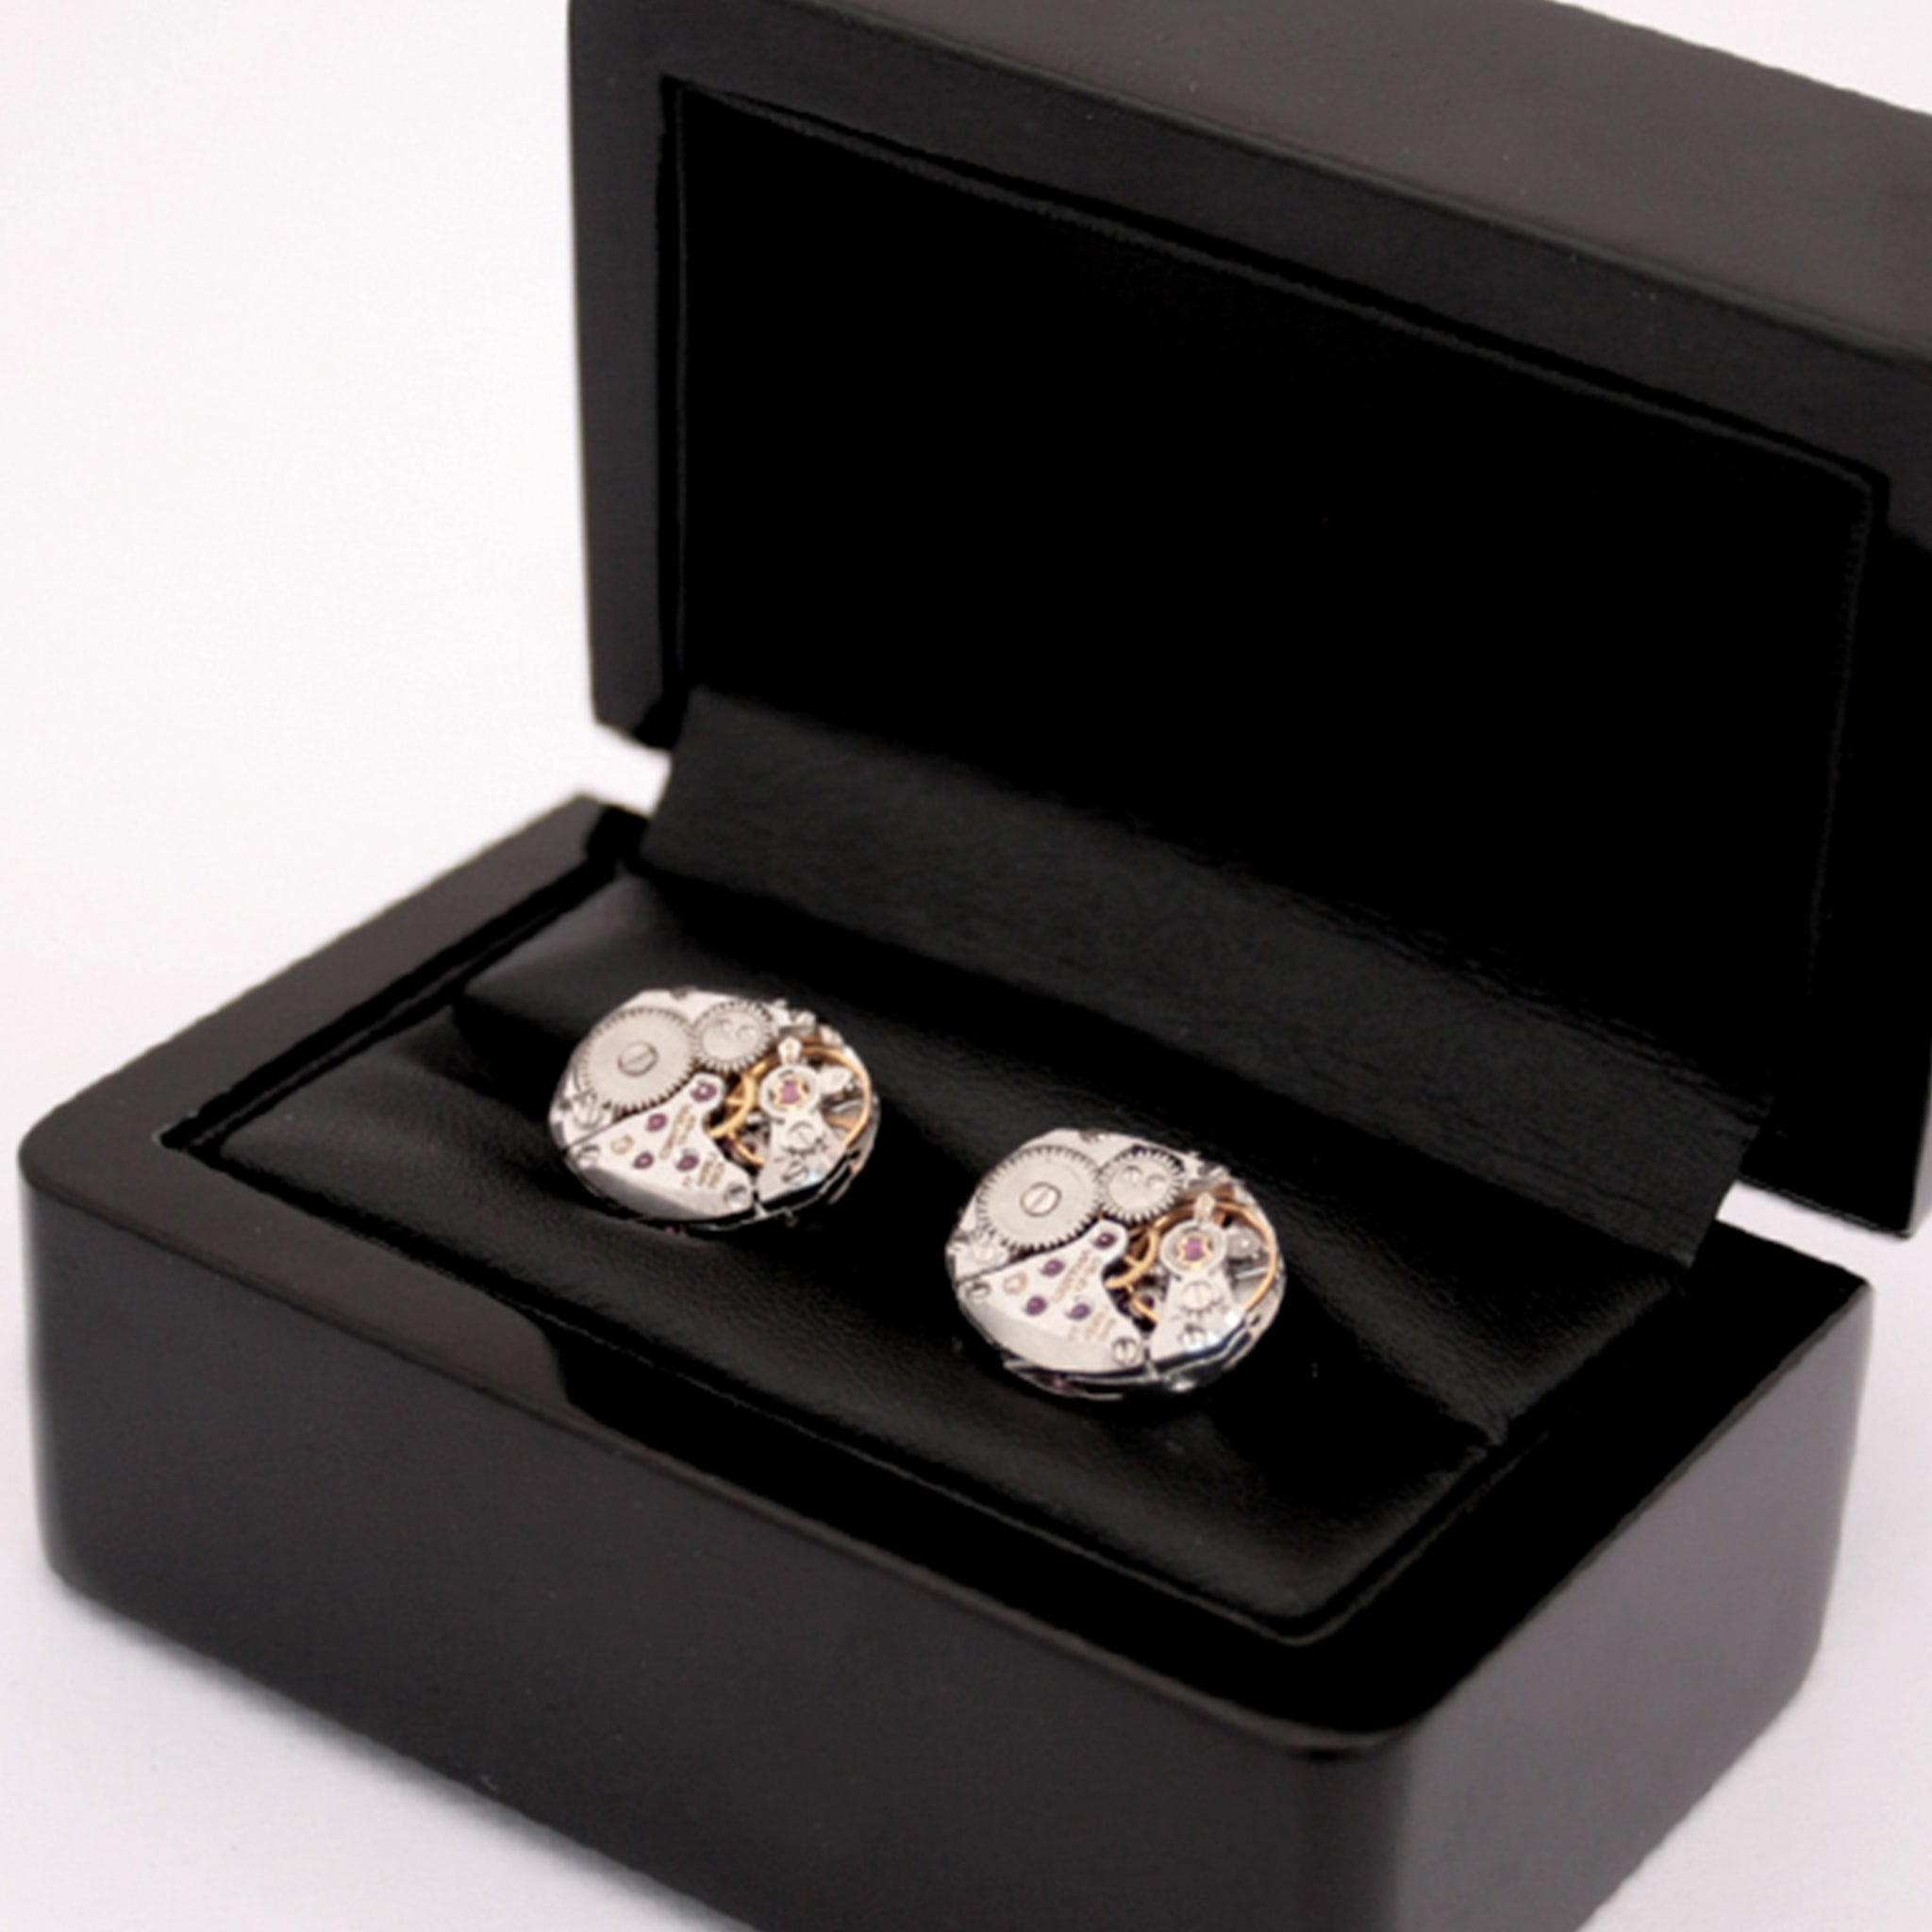 Deluxe Steampunk Cufflinks in Ebony Box